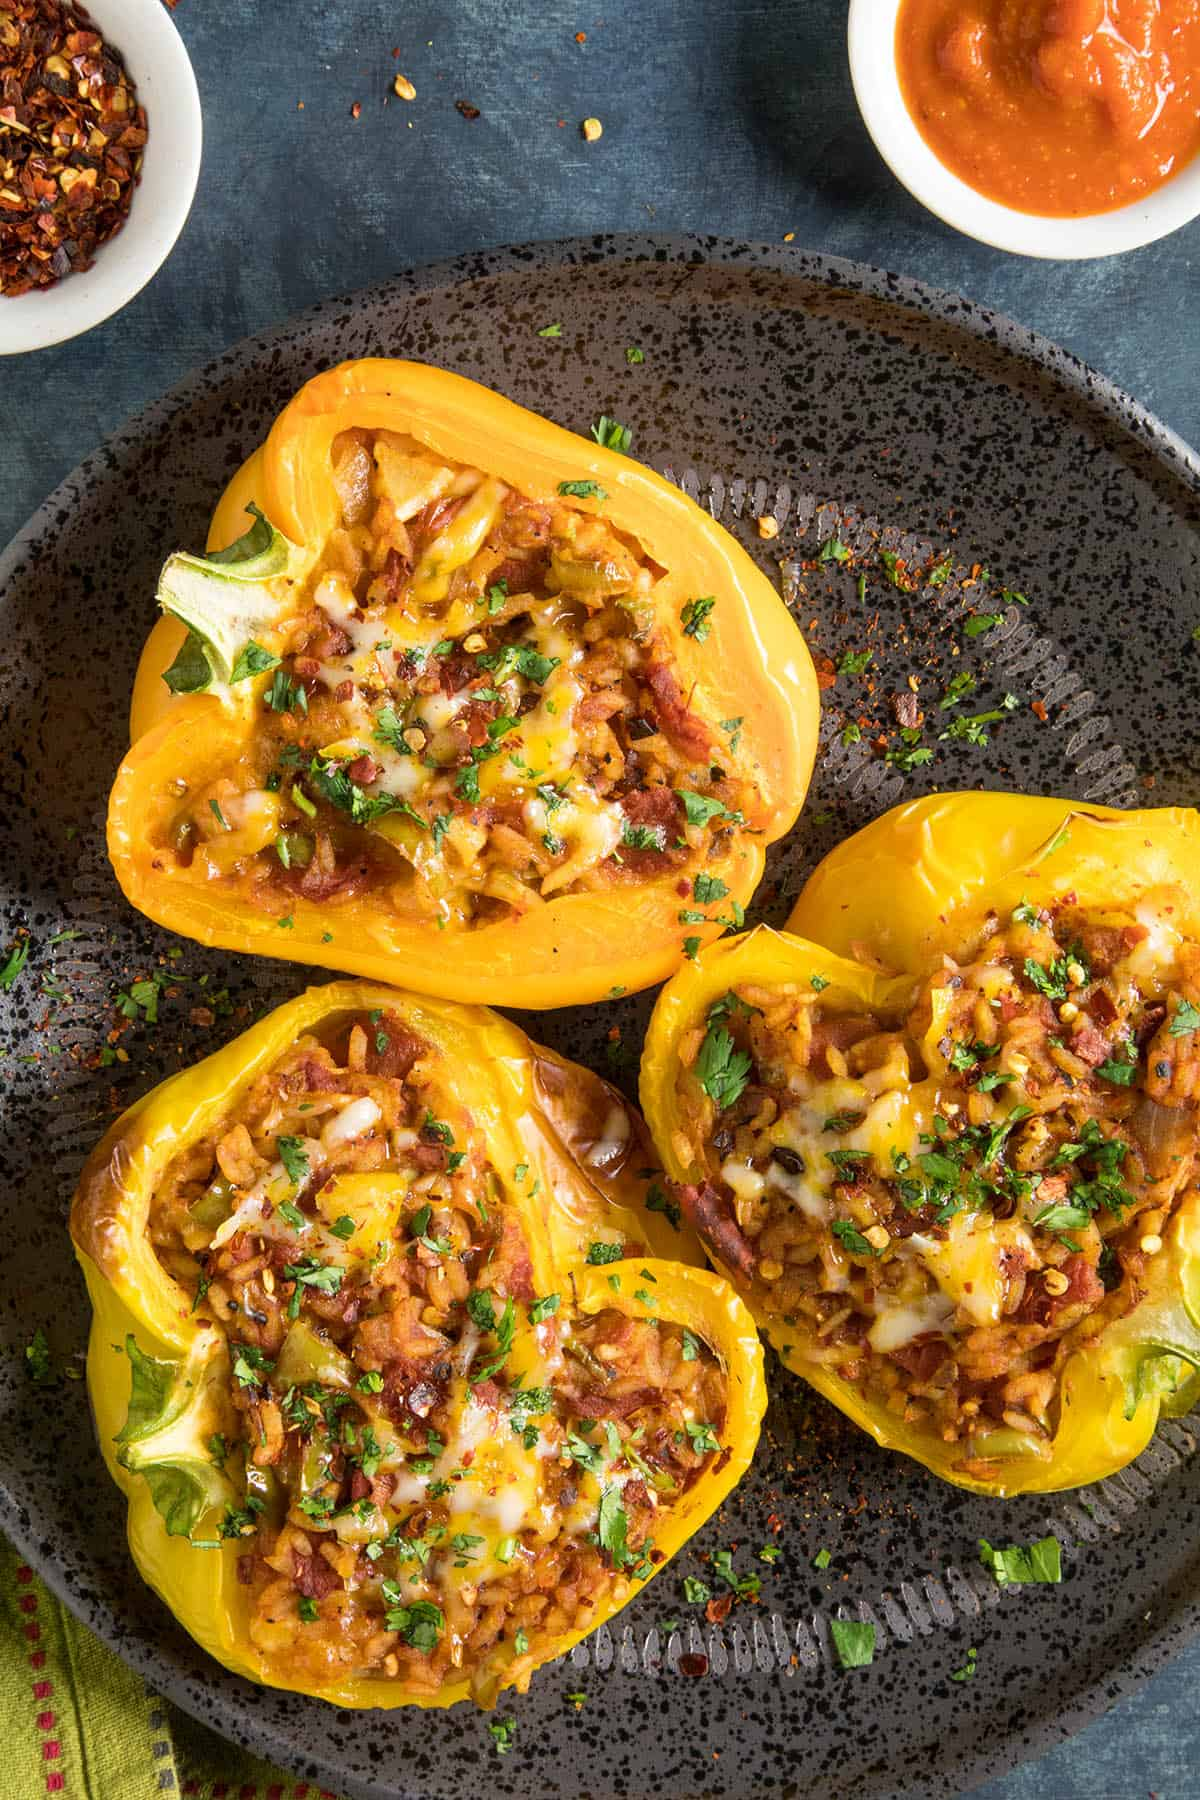 These Vegetarian Stuffed Peppers are stuffed with loads of spicy rice, cheese and more.